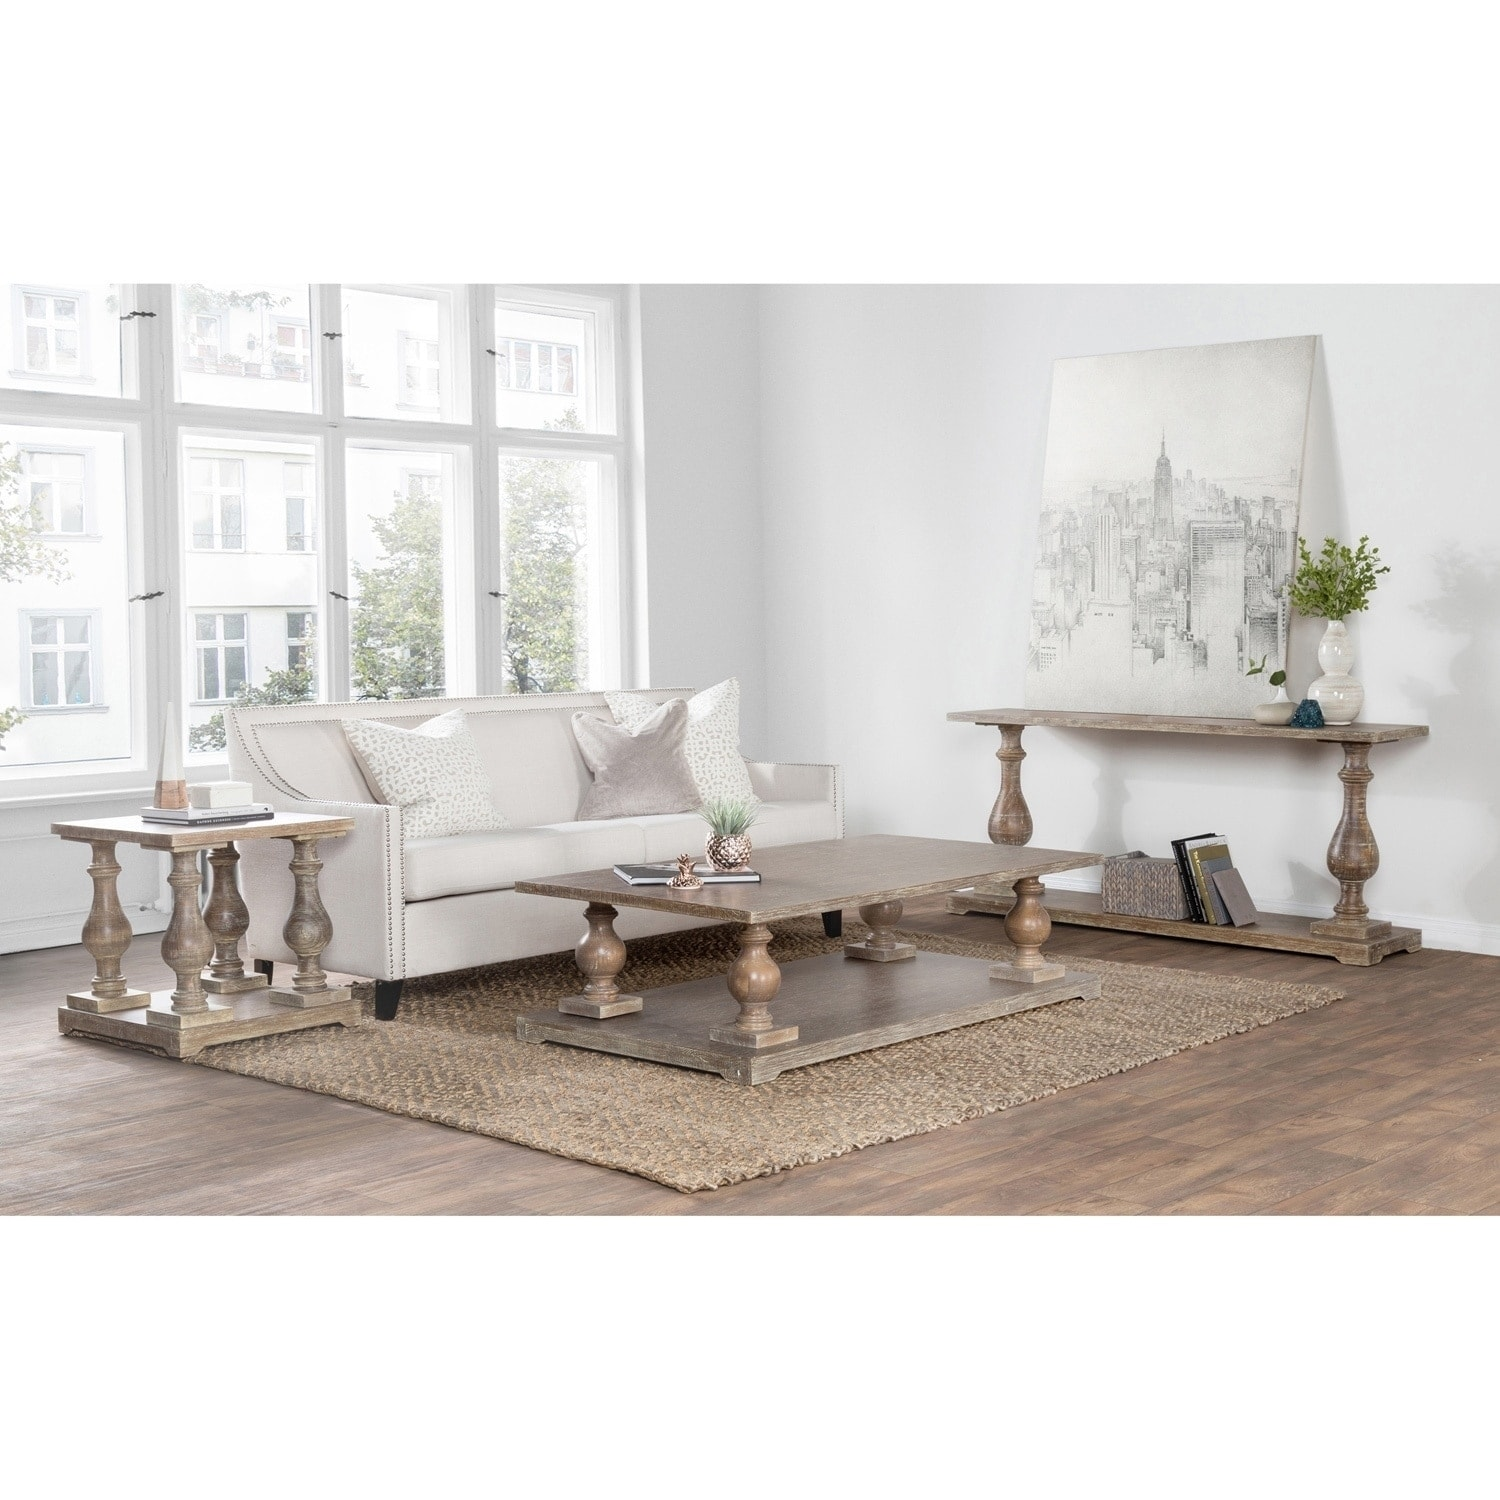 Parvin Hand Crafted Wood Coffee Table by Kosas Home (Coff...